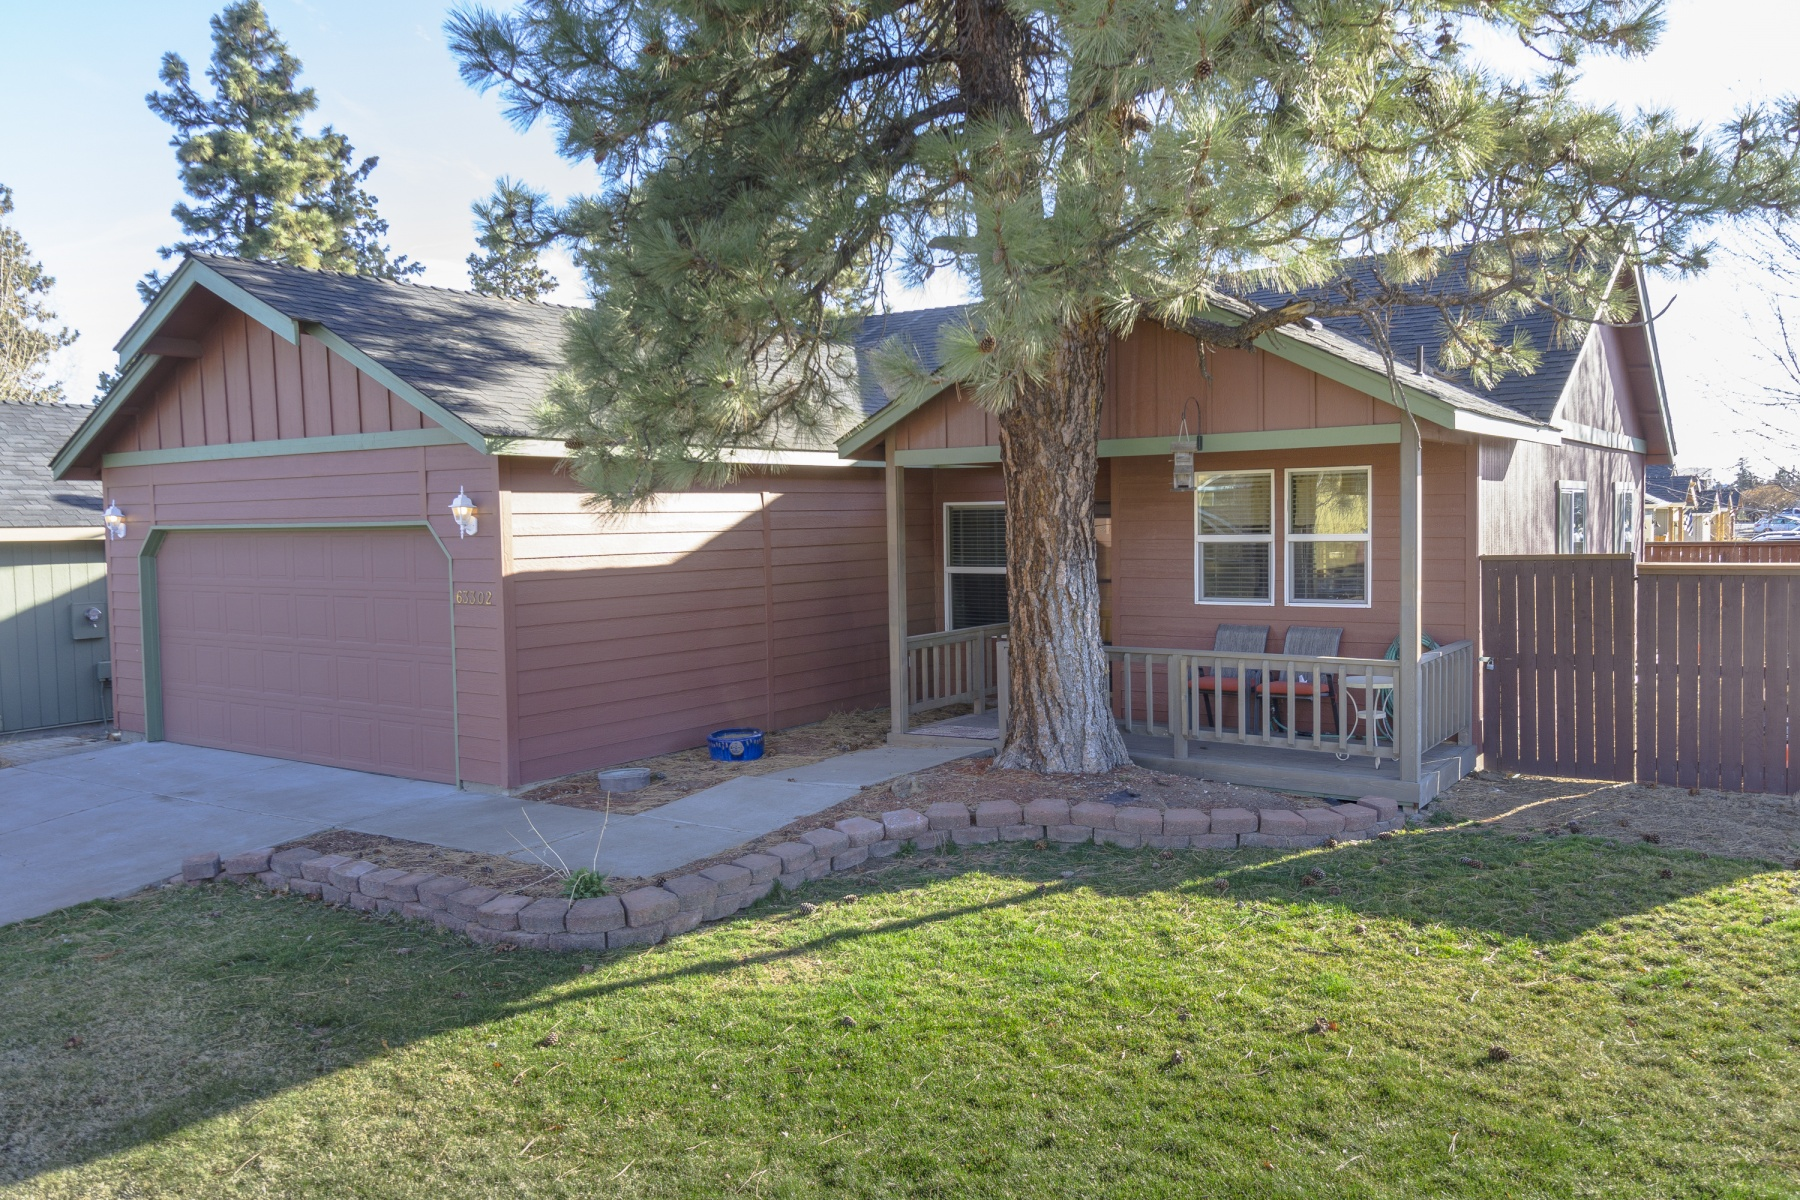 Single Family Home for Sale at 63302 Lavacrest Street, BEND Bend, Oregon, 97703 United States